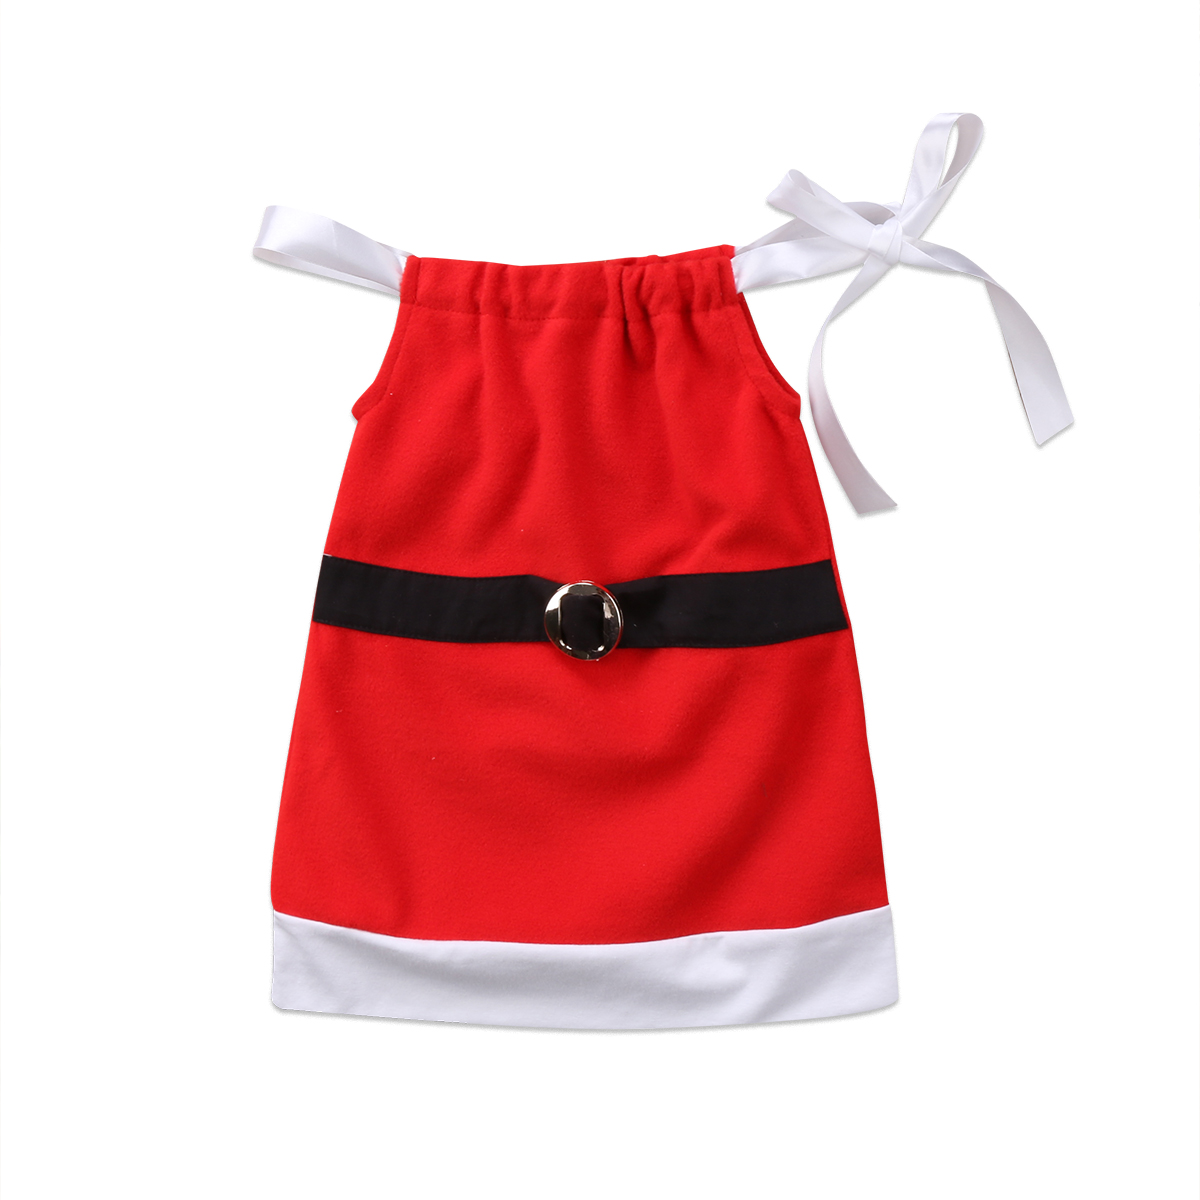 2017 New Christmas Toddler Girls Kids Fancy Santa Claus Strap Tops Sleeveless Bandage Party Red Dress Clothes